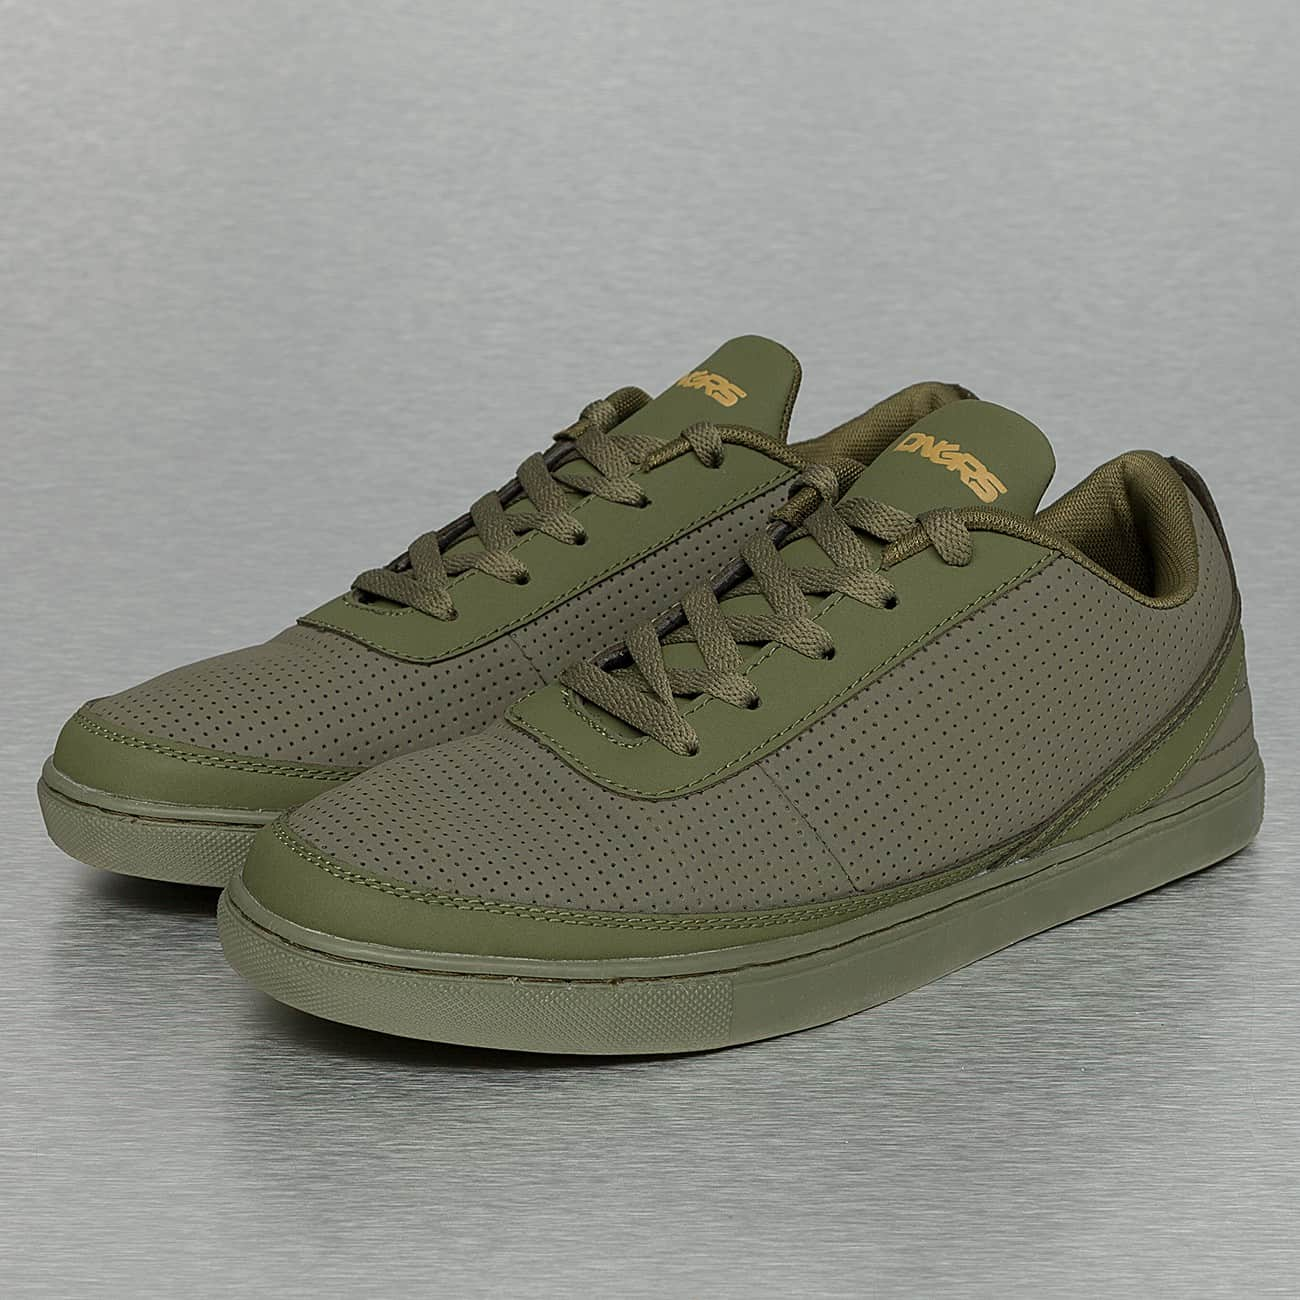 streetwear fashion online shop dangerous dngrs perforated sneakers olive auf rechnung. Black Bedroom Furniture Sets. Home Design Ideas